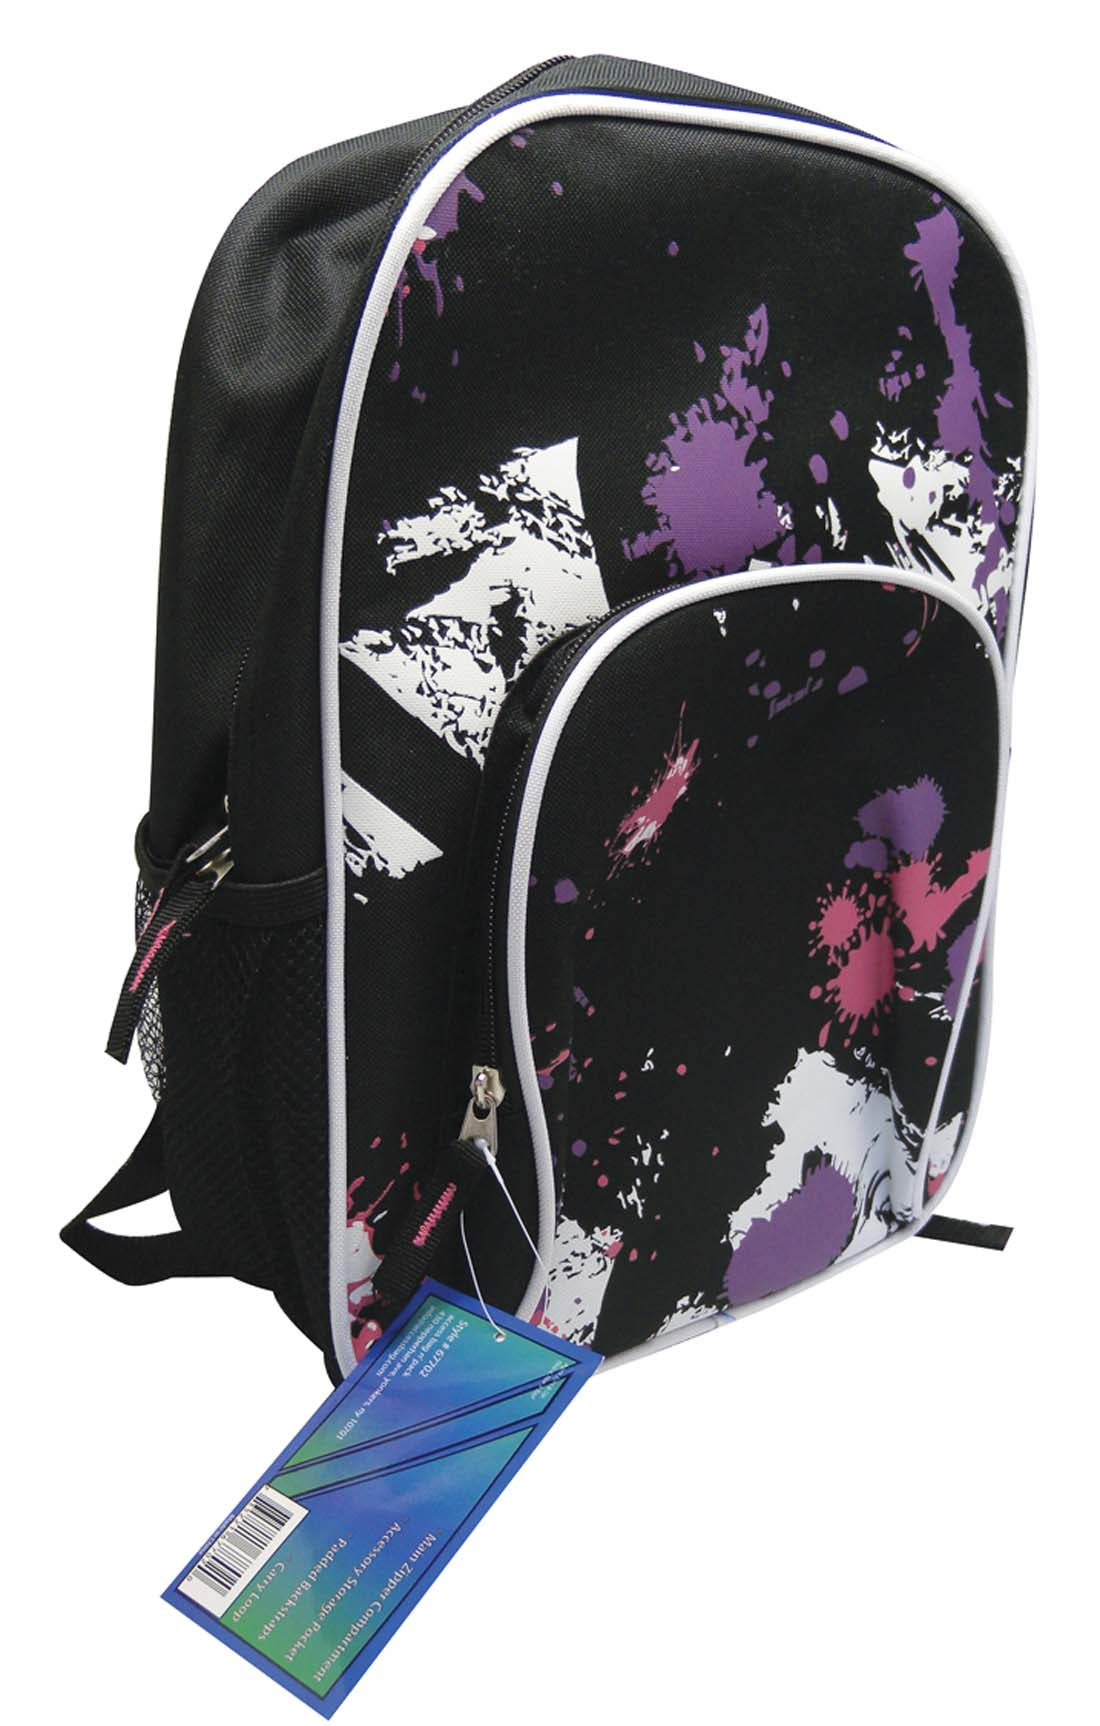 View BACKPACK 14 INCH WITH FRONT & SIDE POCKETS PREPRICED $12.99